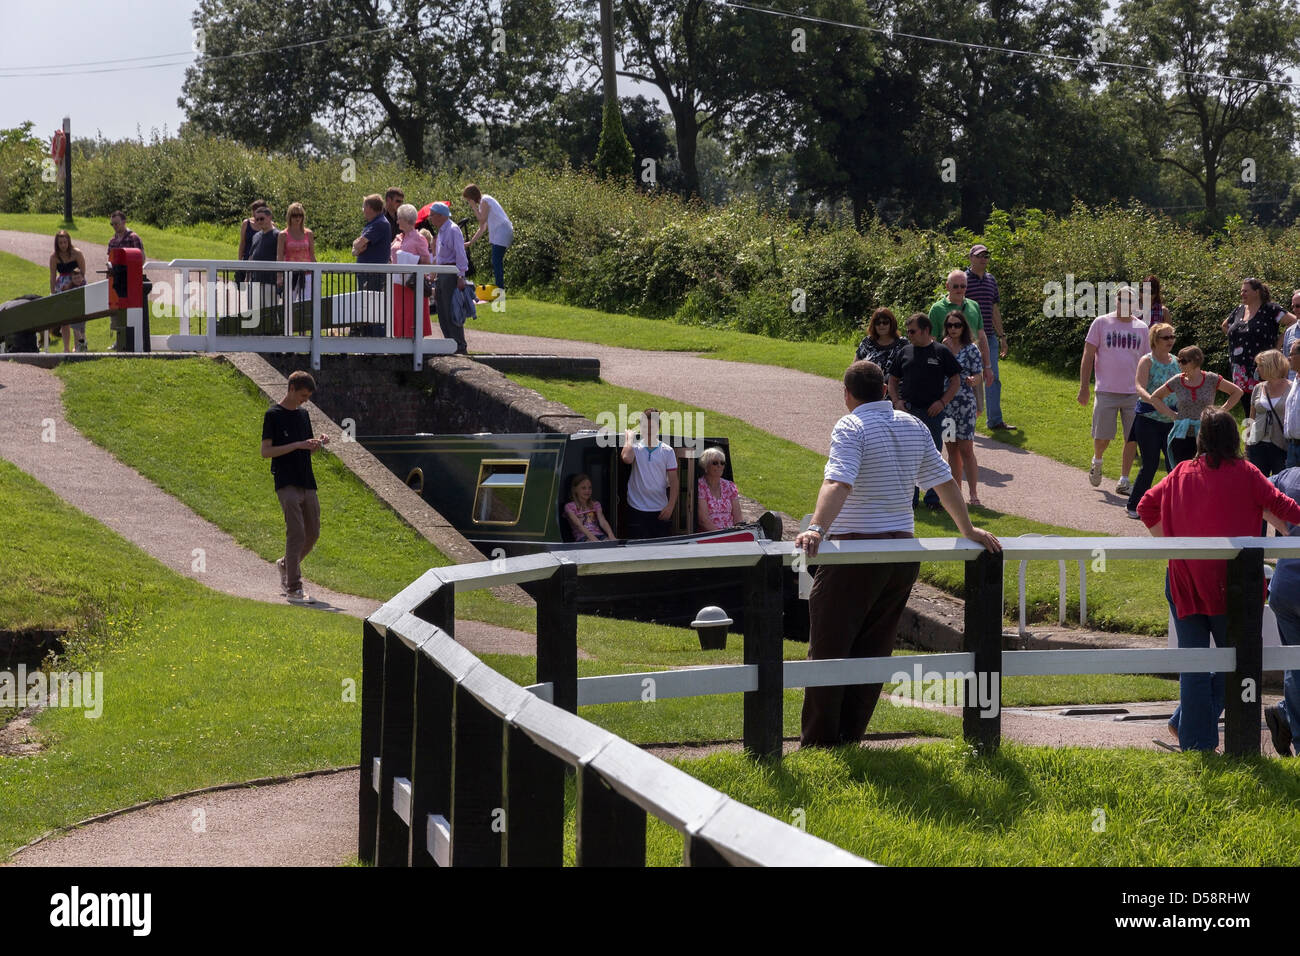 A busy day at Foxton Locks, Grand Union Canal, Market Harborough, Leicestershire, England, UK - Stock Image